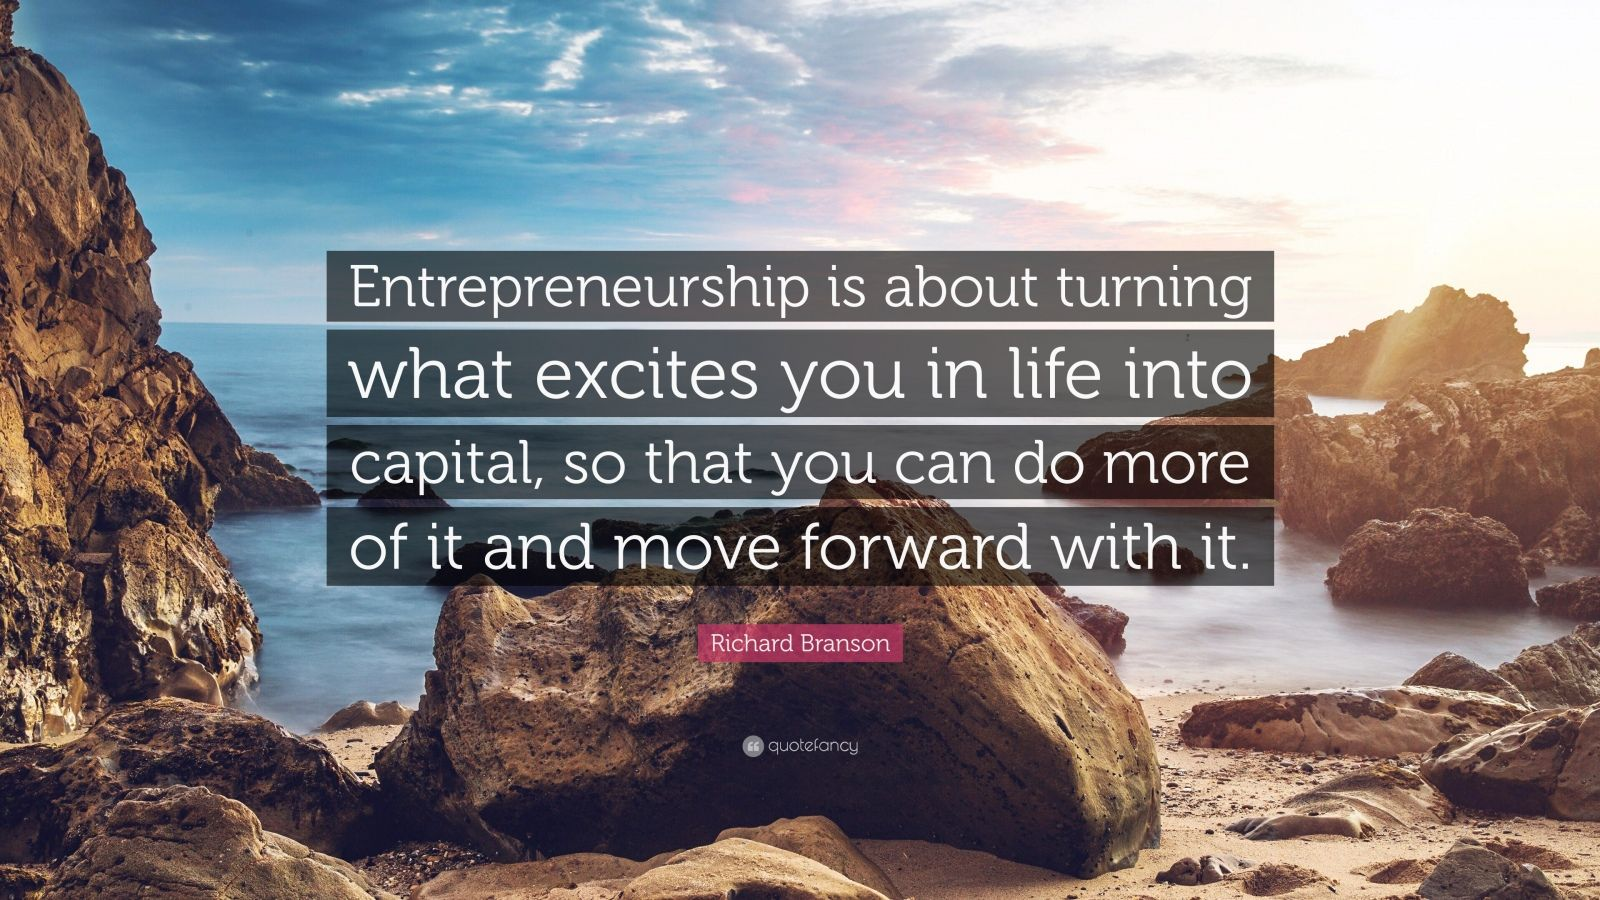 """Richard Branson Quote: """"Entrepreneurship is about turning what excites you in life into capital, so that you can do more of it and move forward with it."""""""